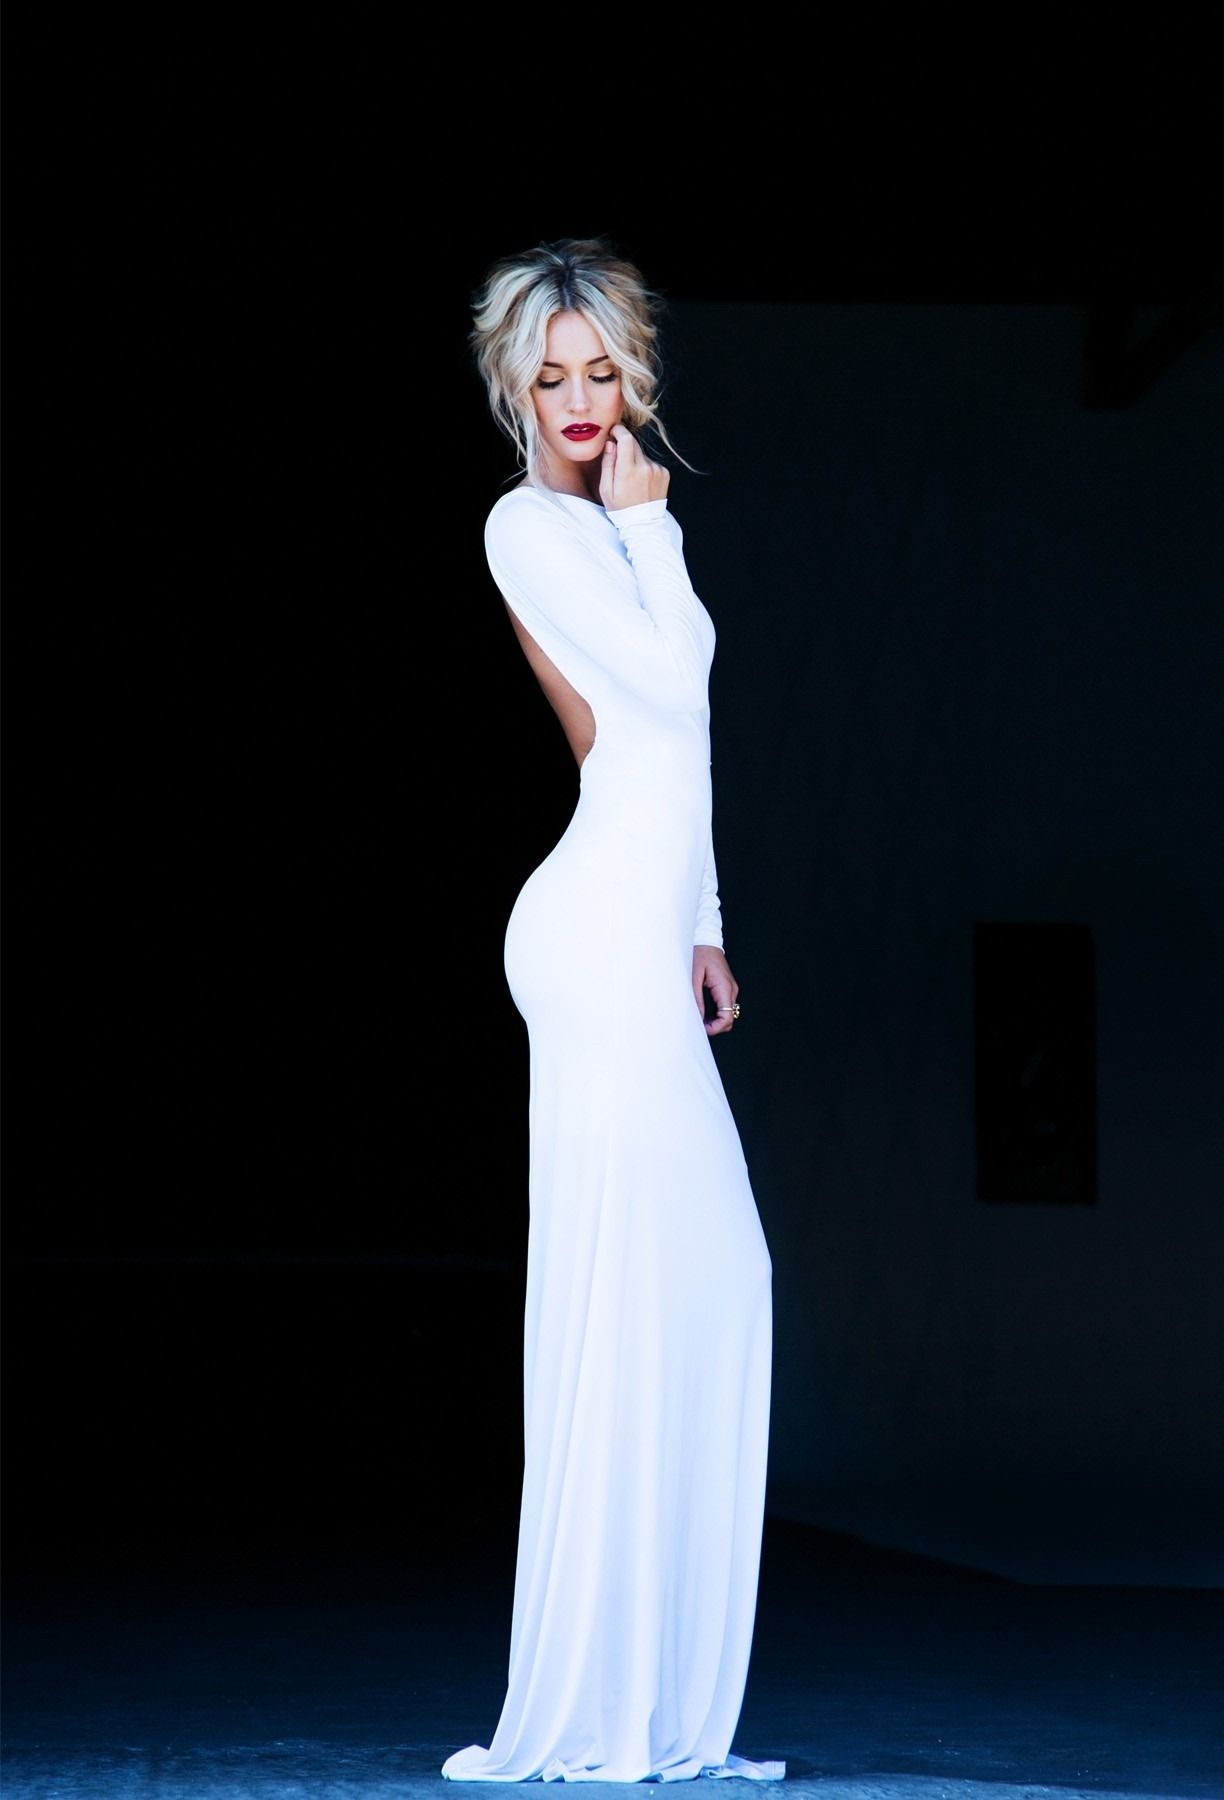 White Long Sleeve Backless Prom Dresses